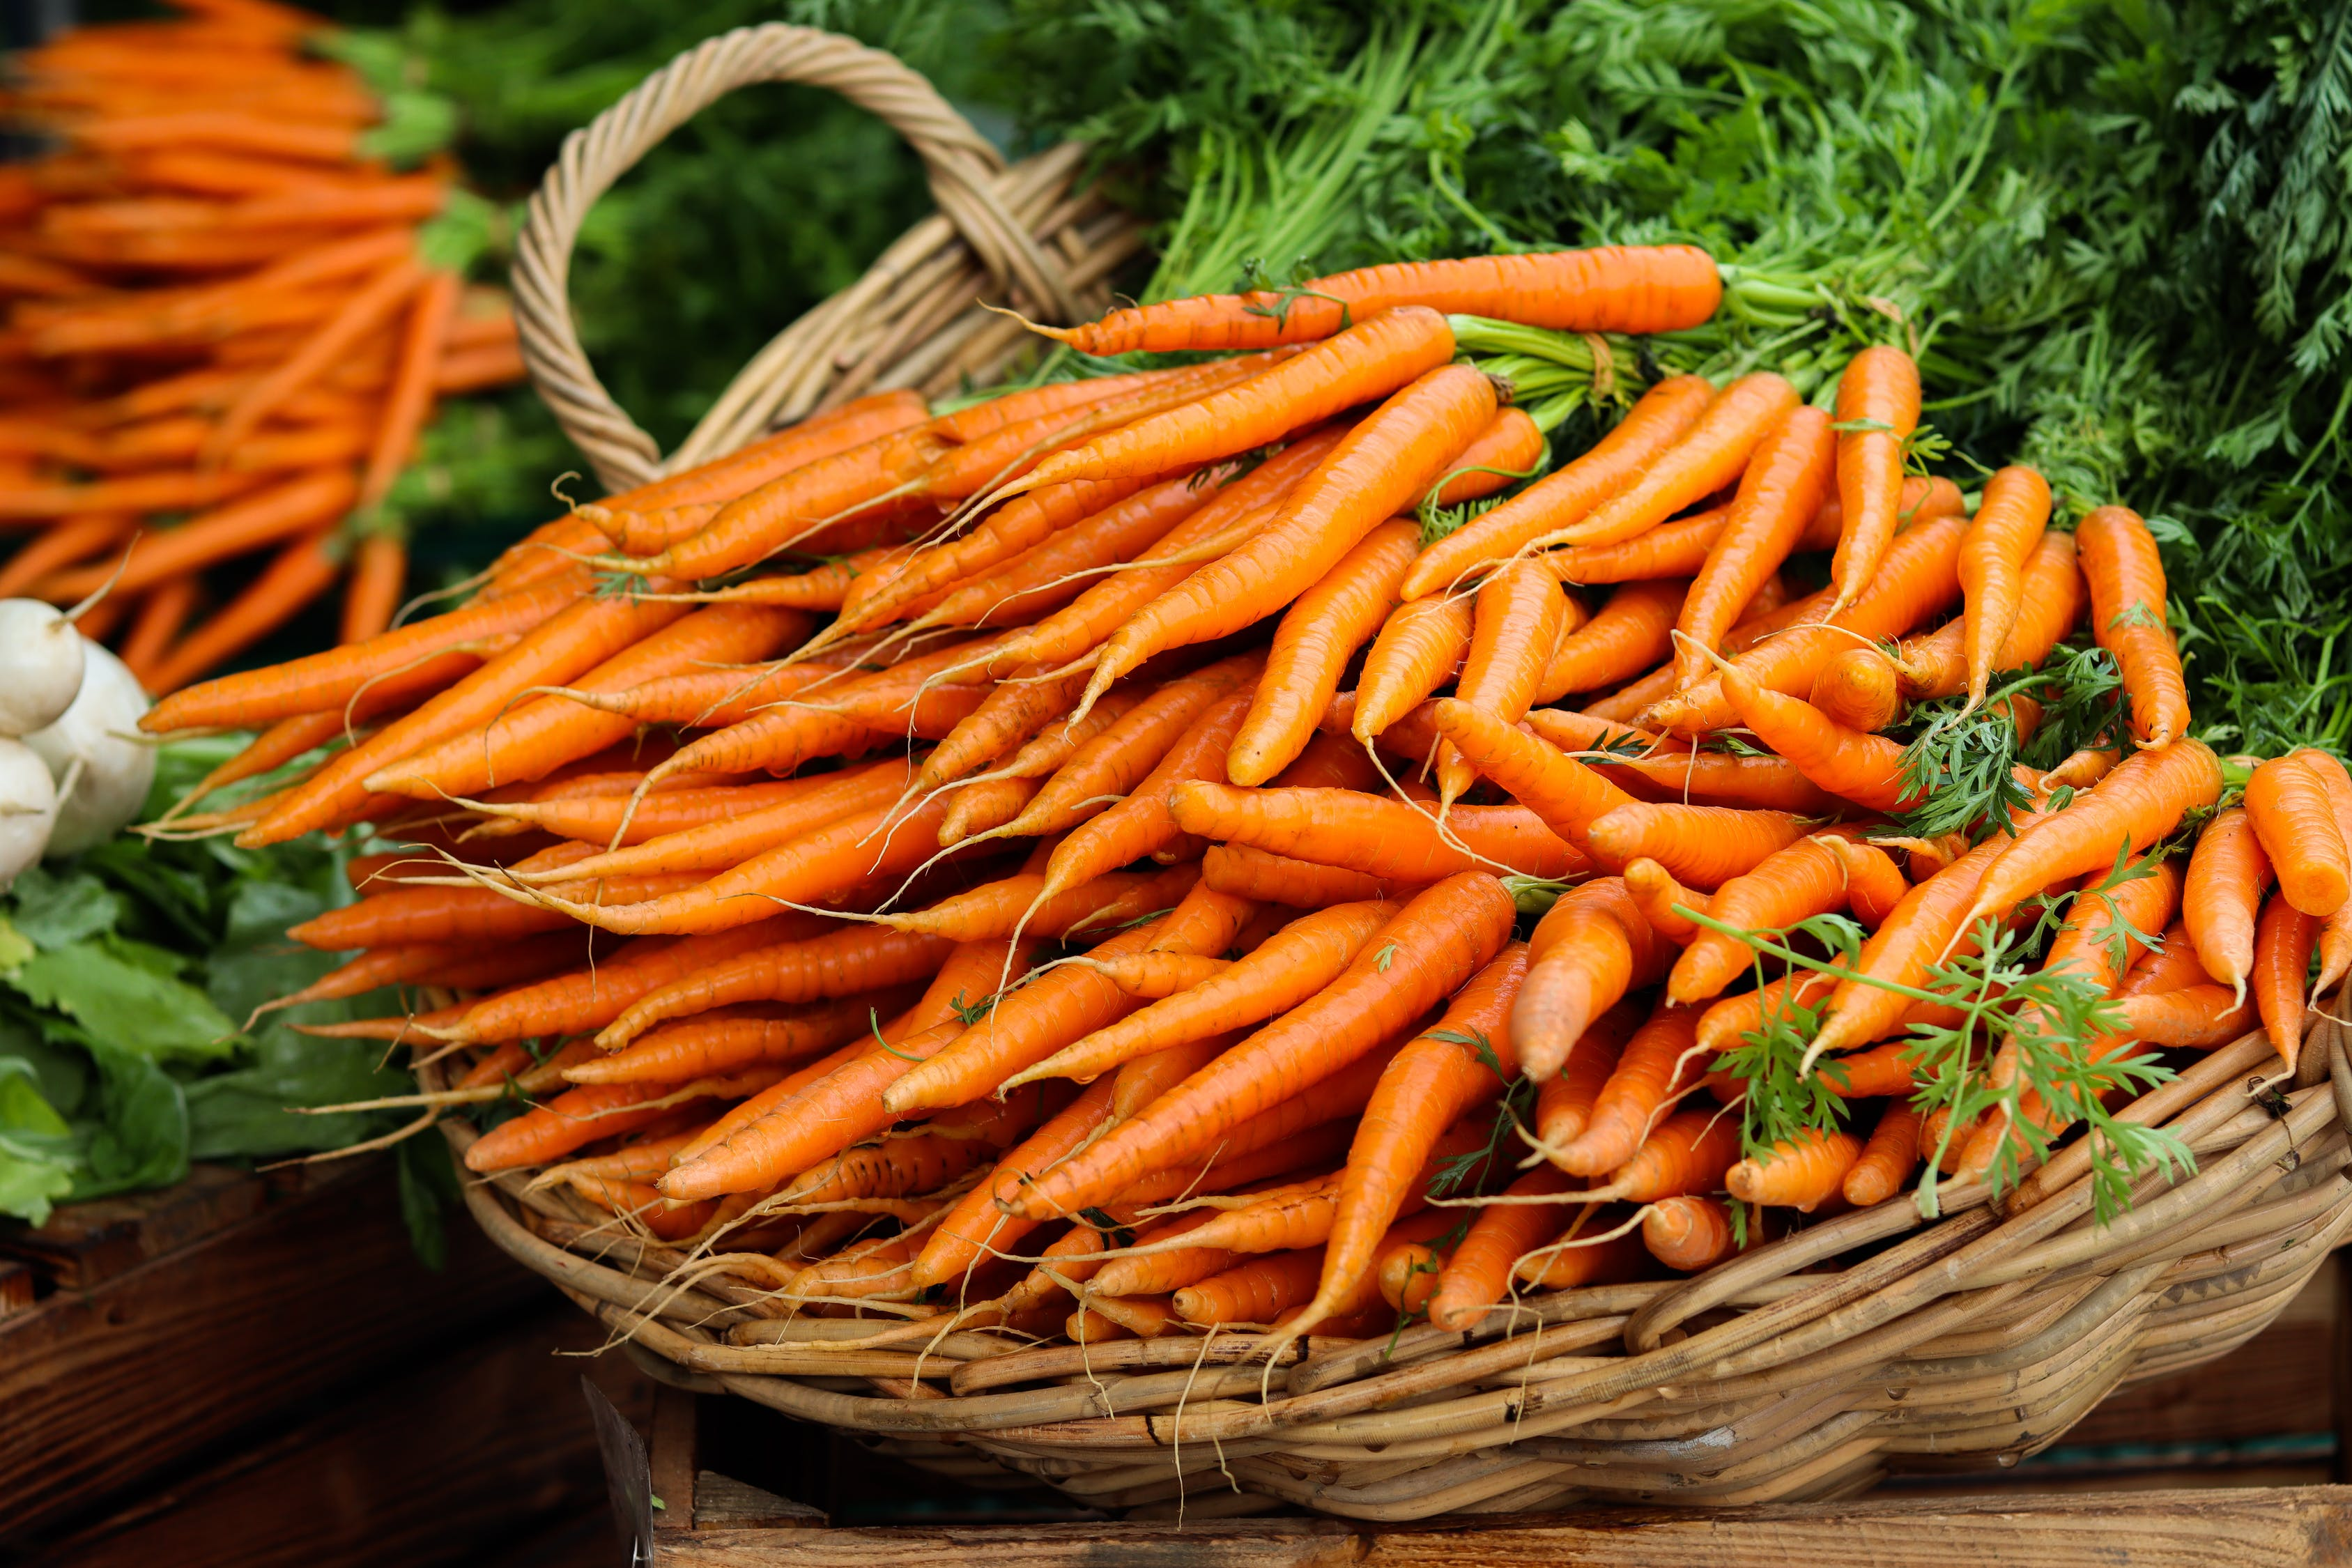 Carrots in a wicker basket